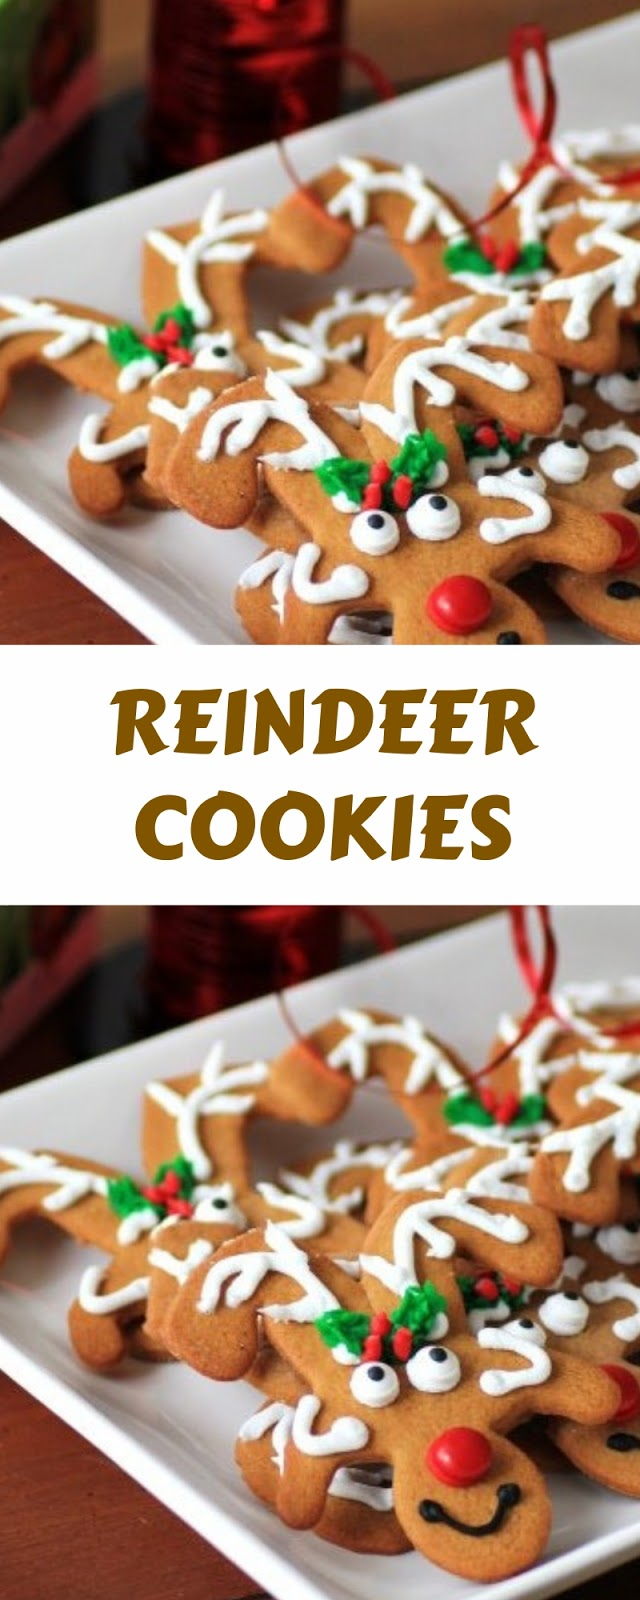 EASY AMAZING REINDEER COOKIES